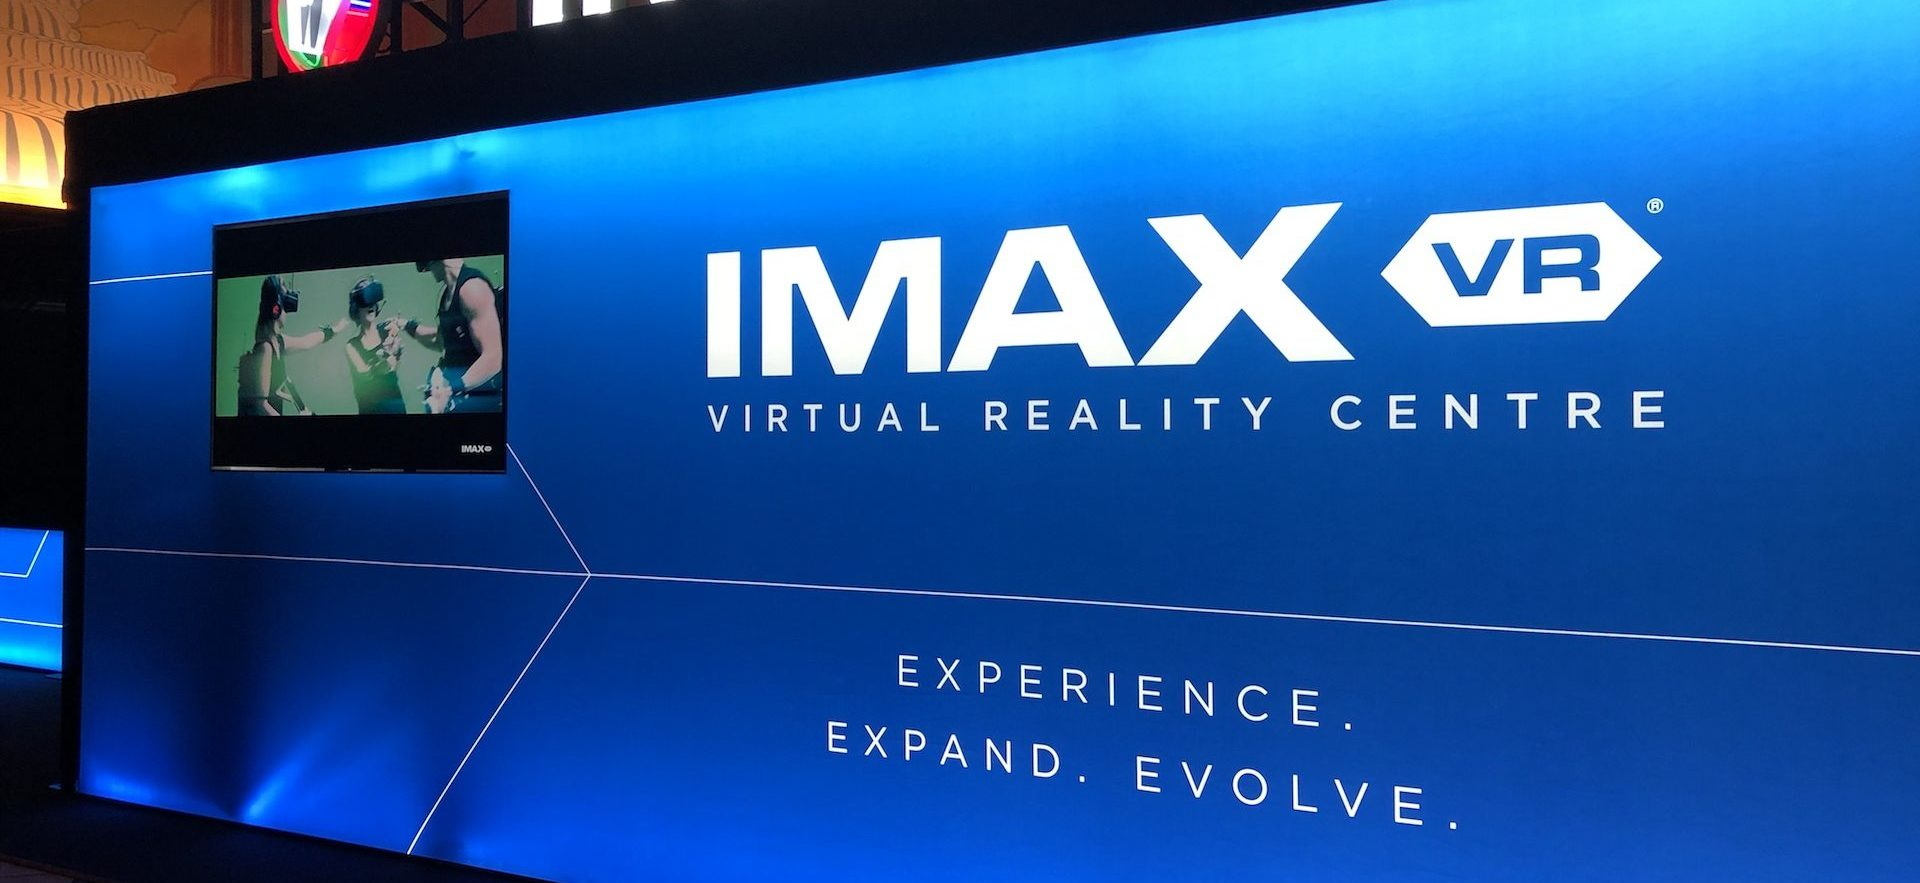 Imax is exiting it's VR space, shutting down remaining three centers in Q1